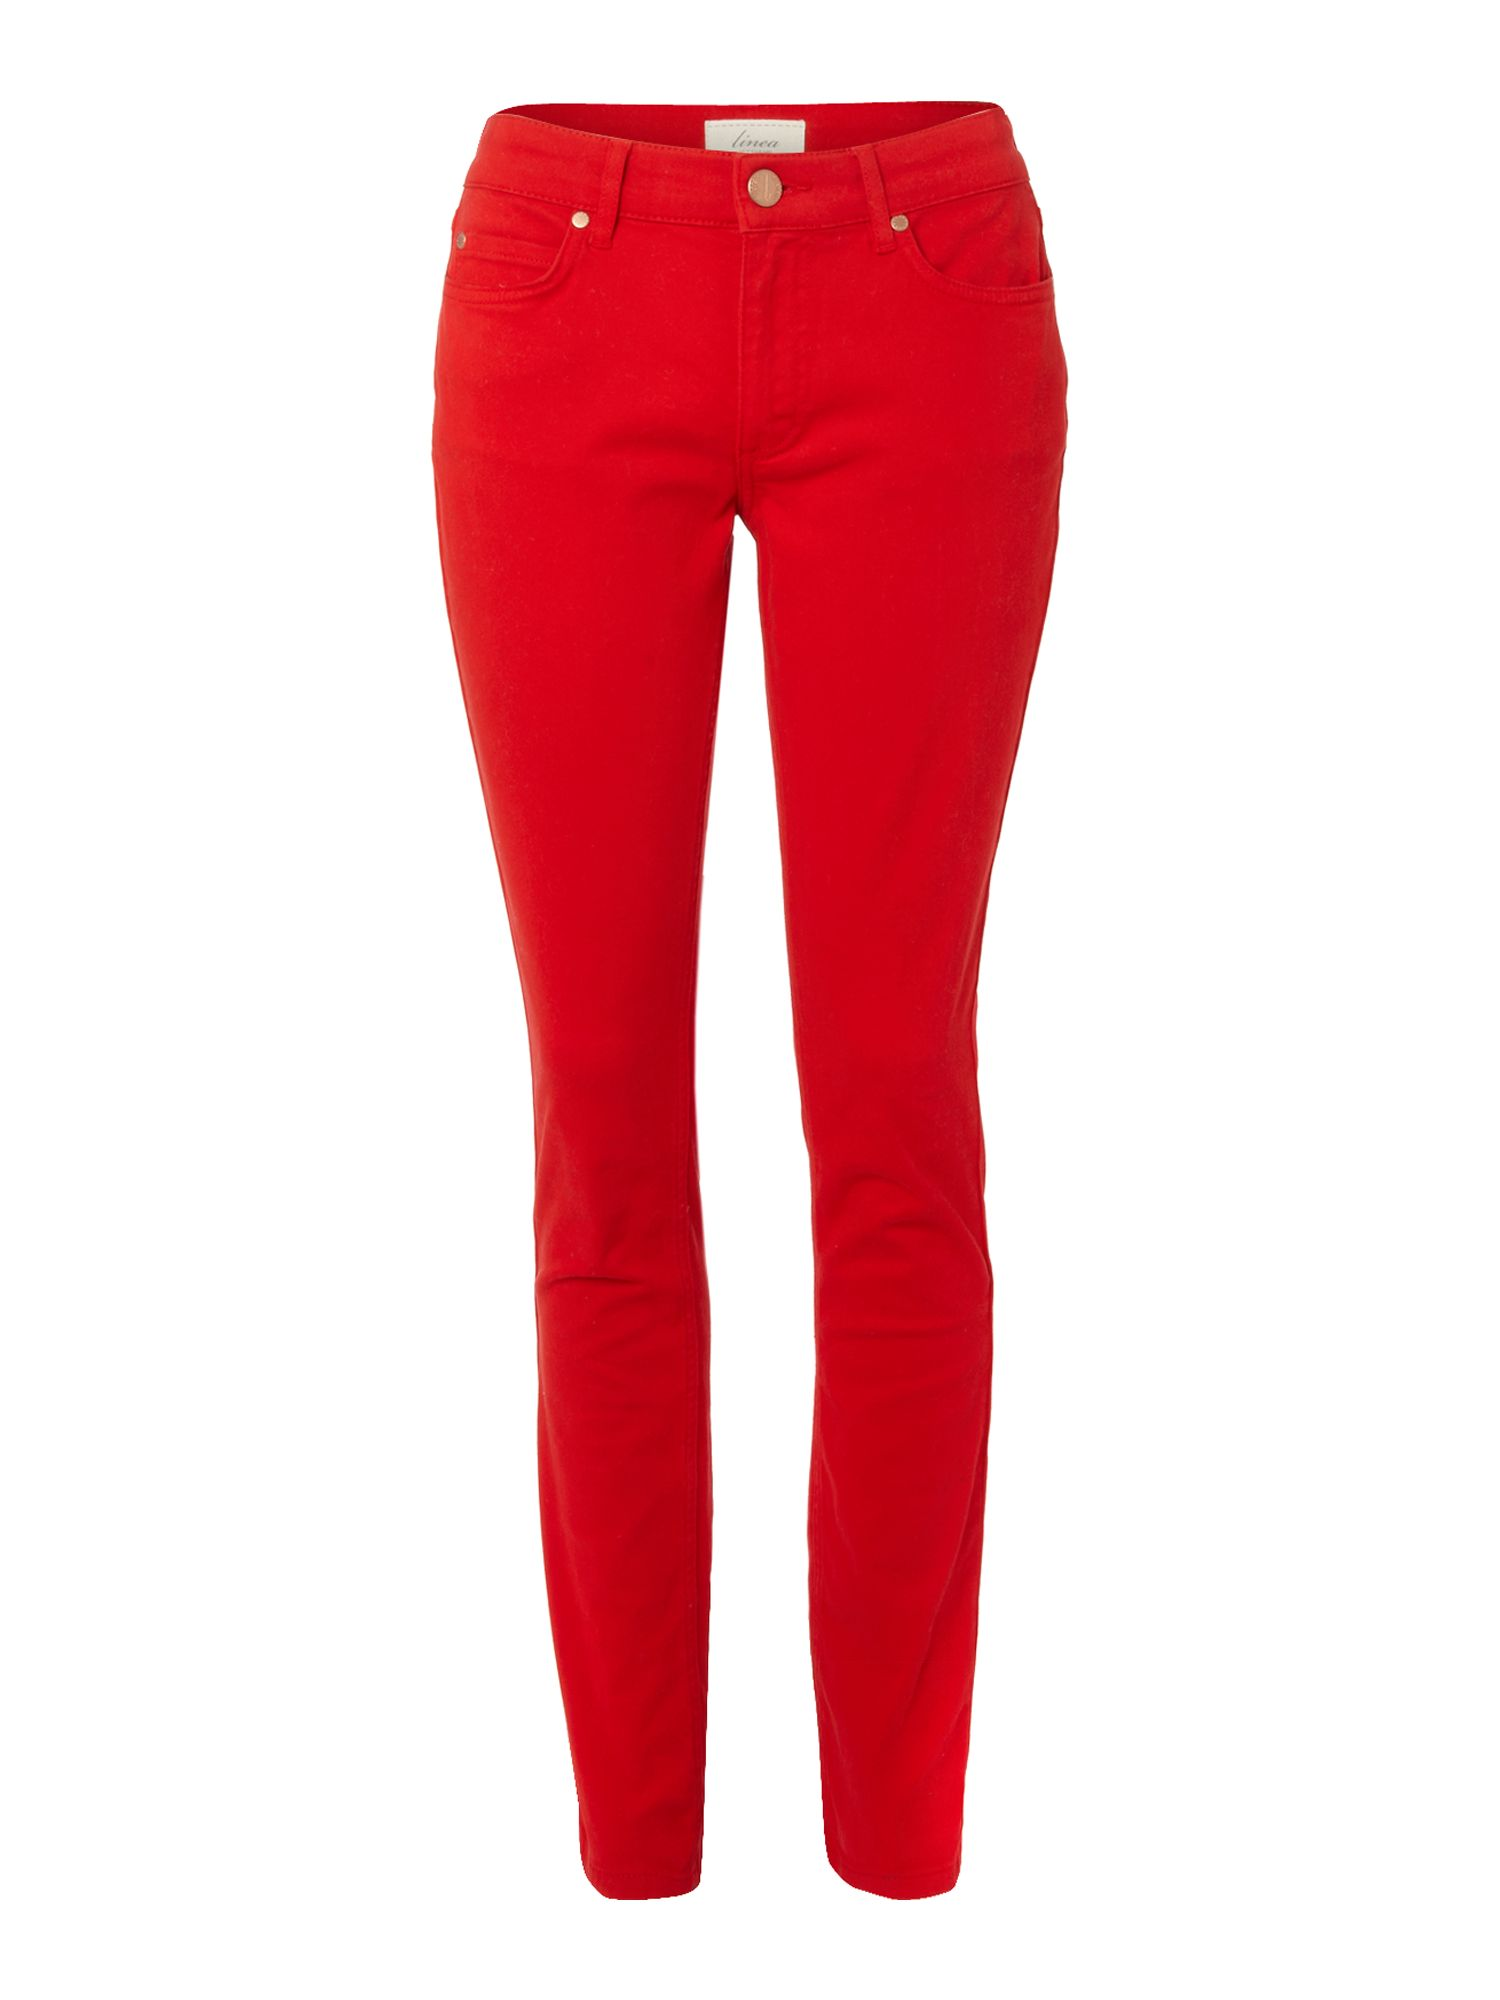 Ladies slim leg coloured jeans